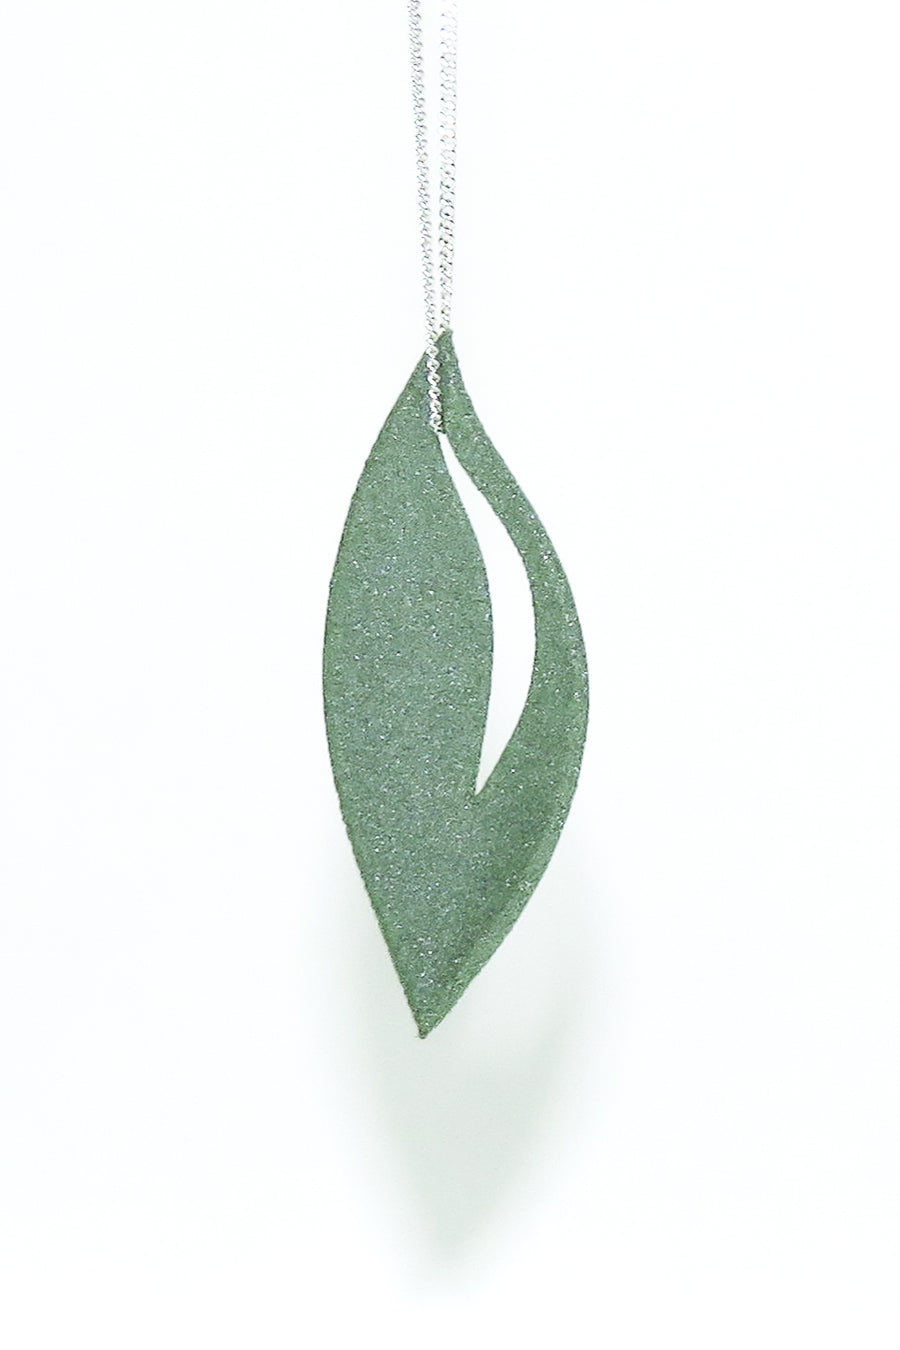 Emerald Green Olive Pendant 3D Printed in Alumide on a sterling silver chain